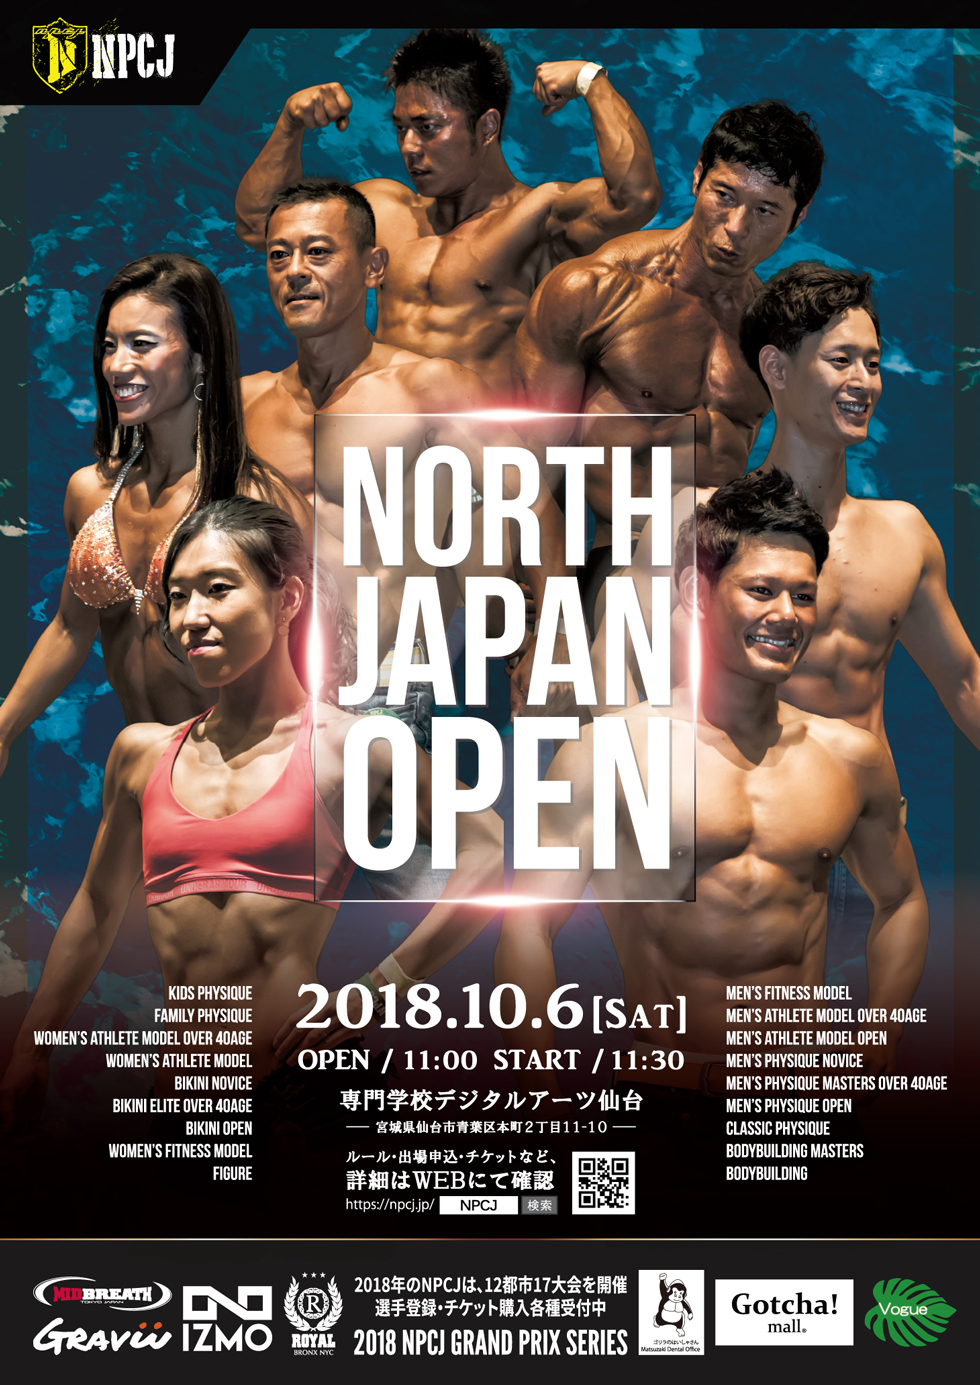 North Japan Open 2018 ポスター